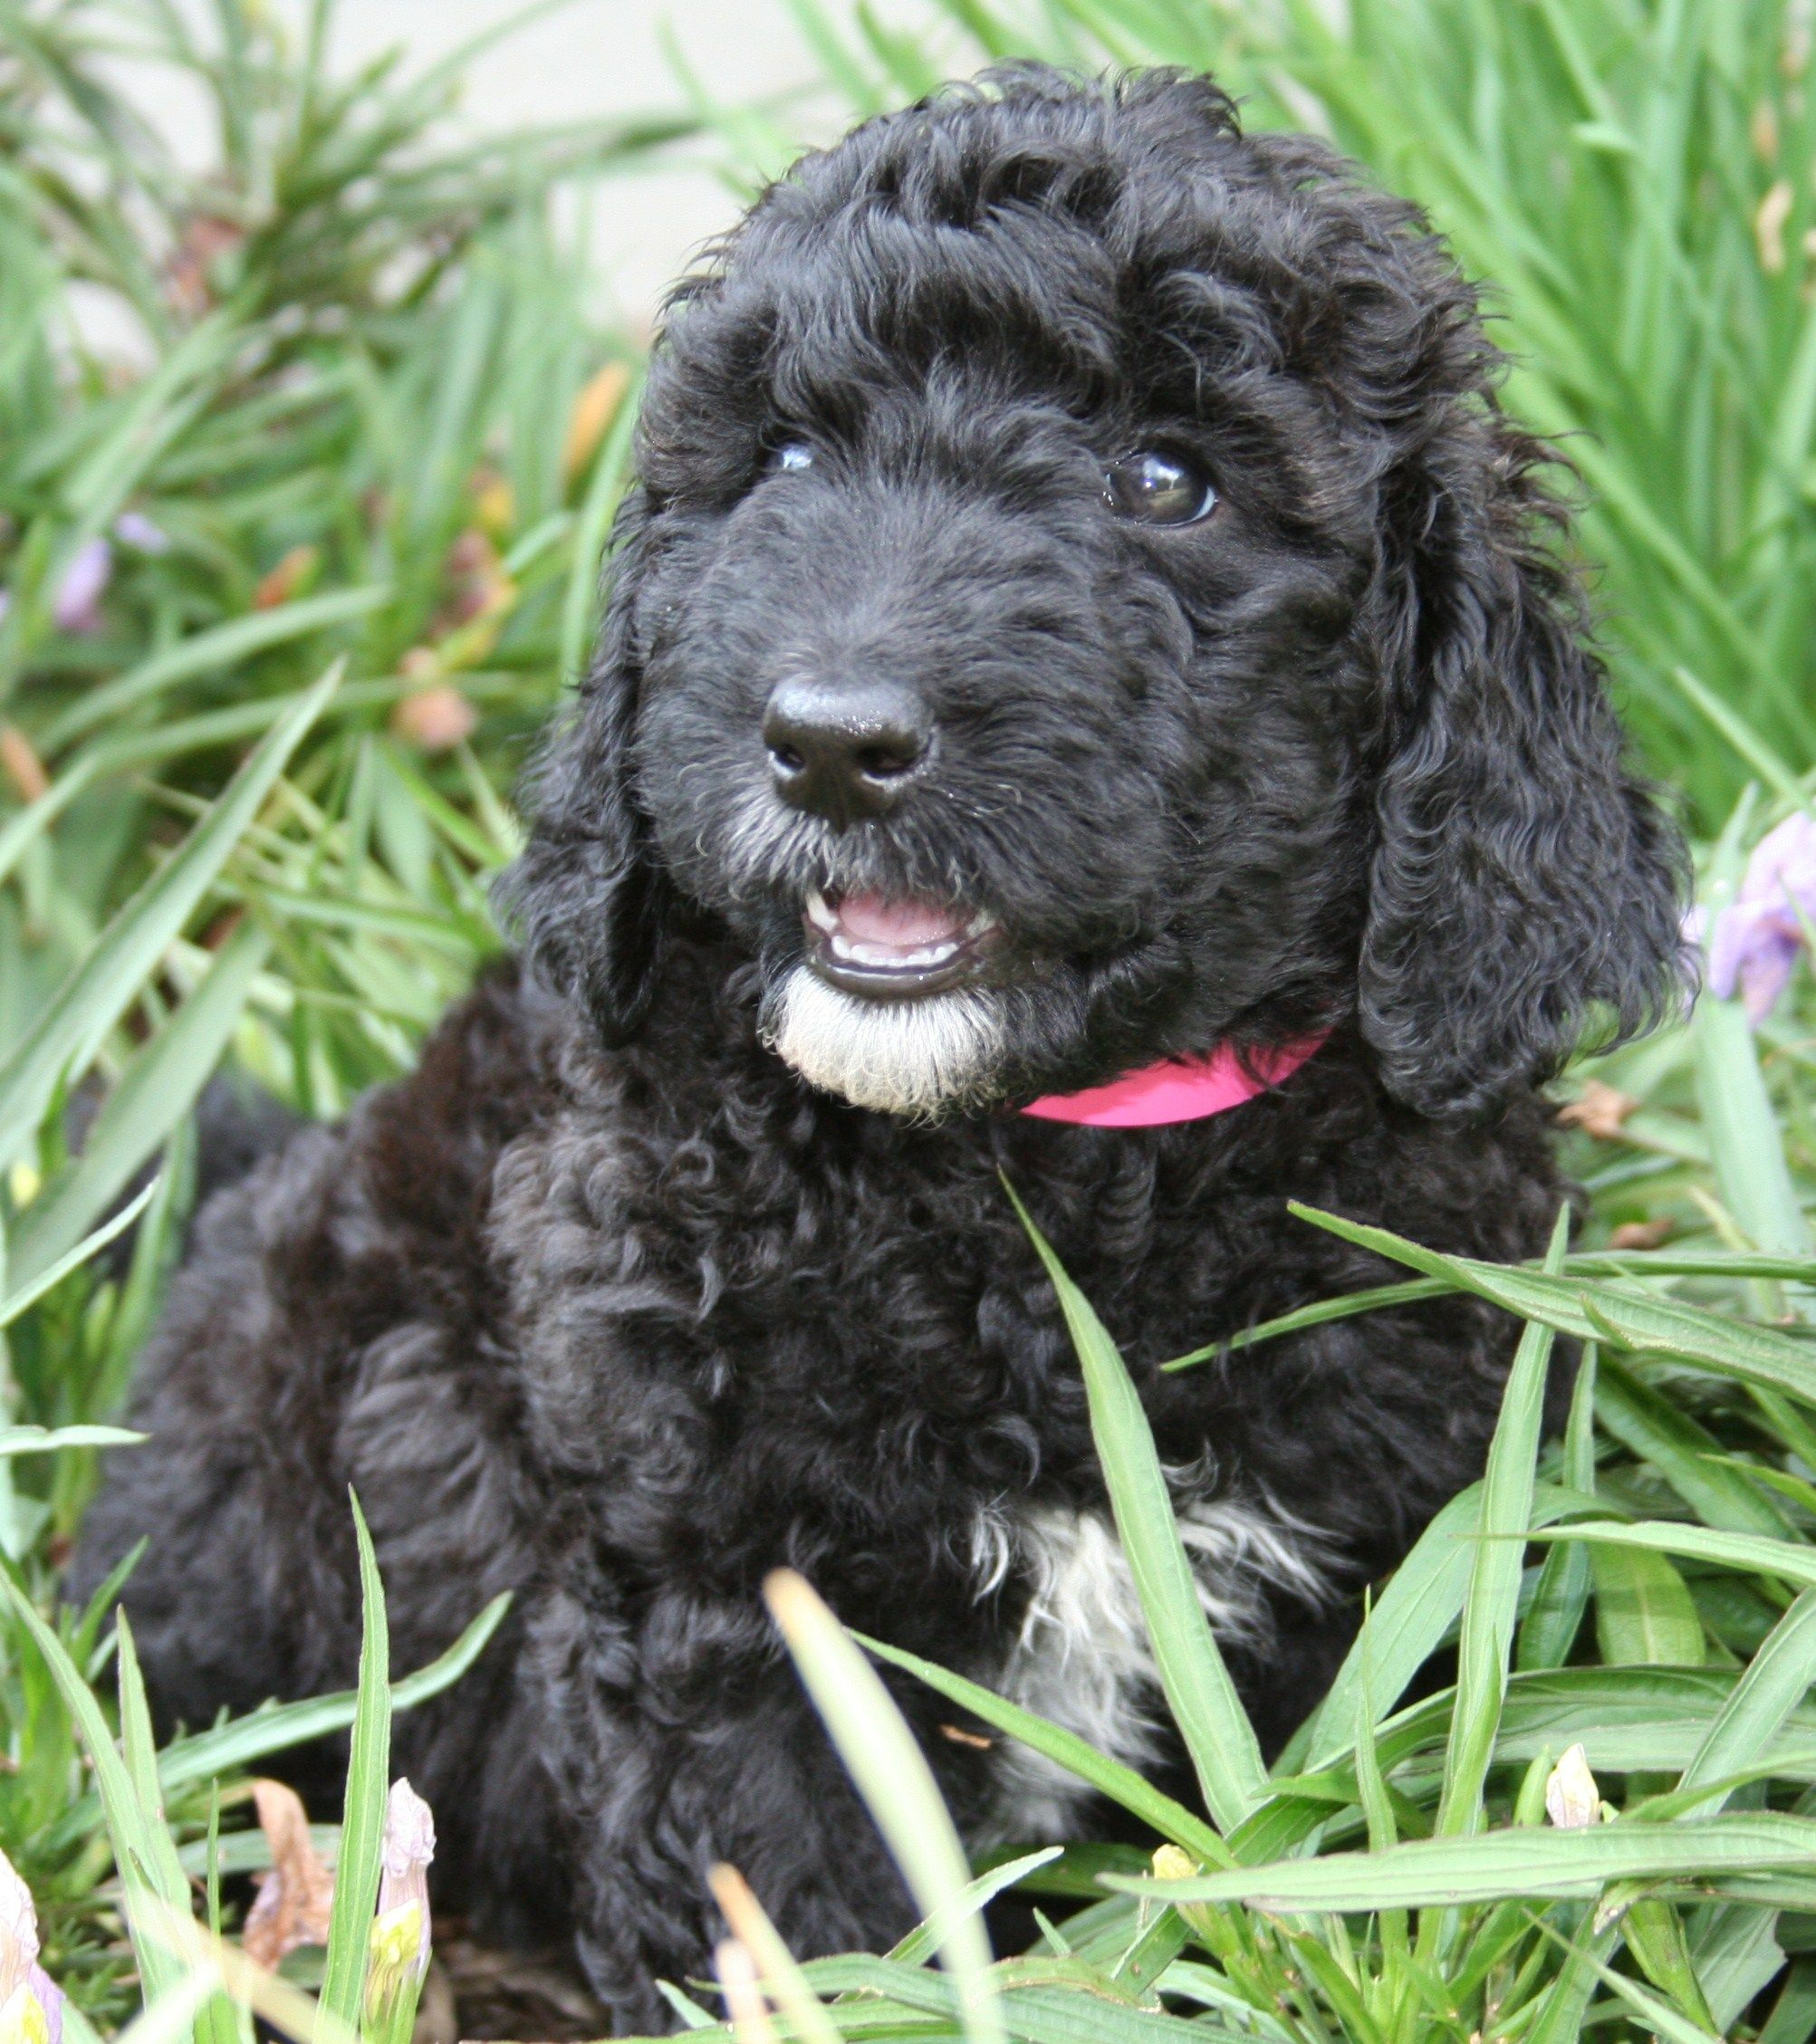 Turk Goldendoodle Dog names, Black dog names, Black dog